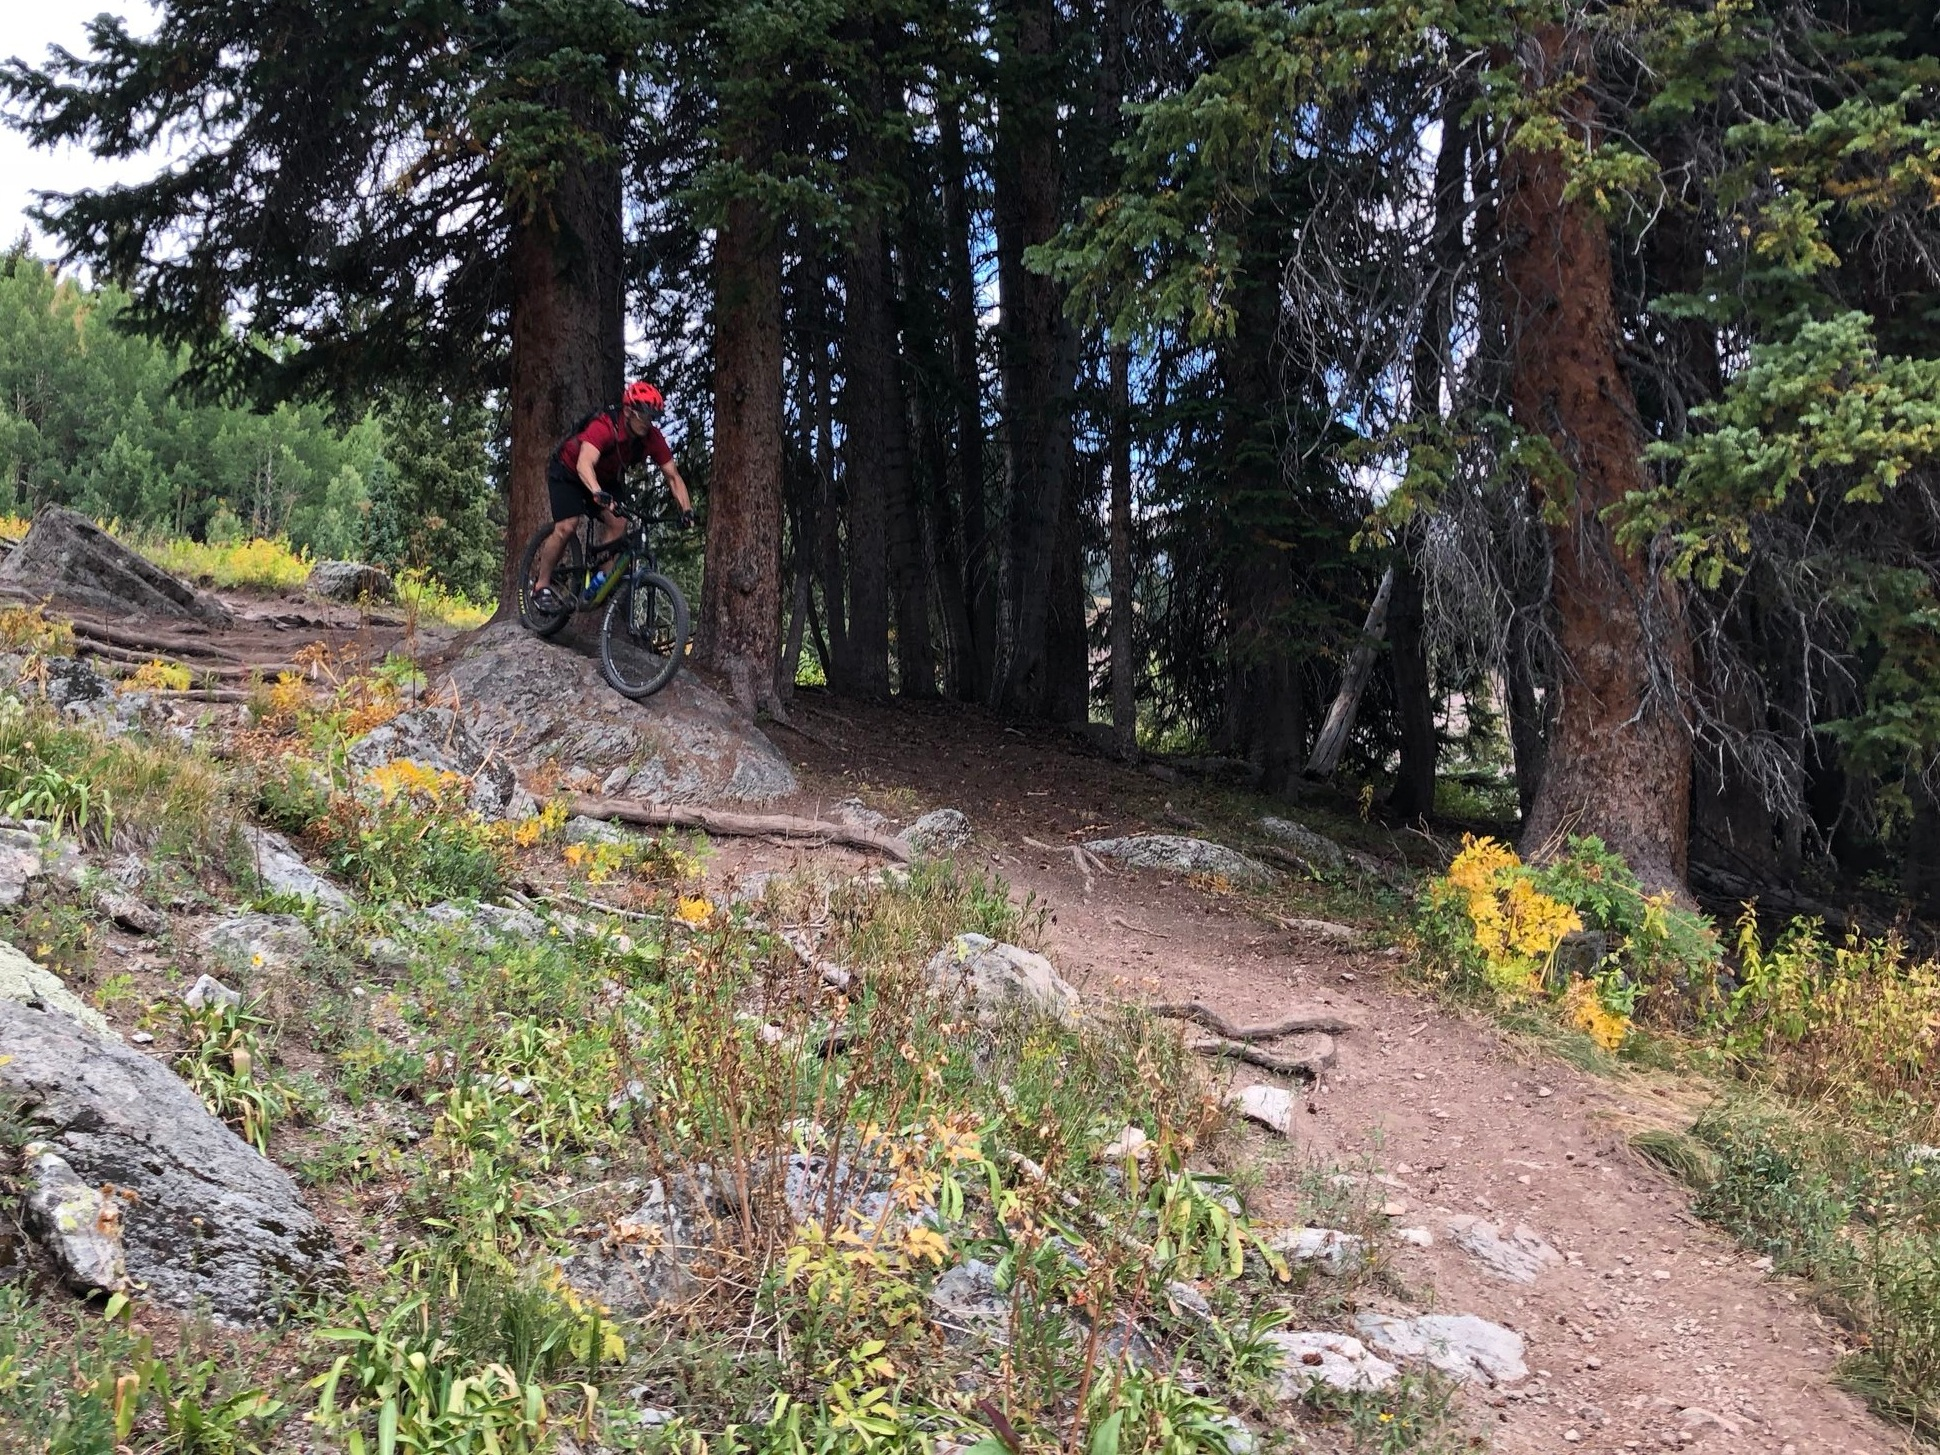 Riding the trails near Crested Butte, Colorado.